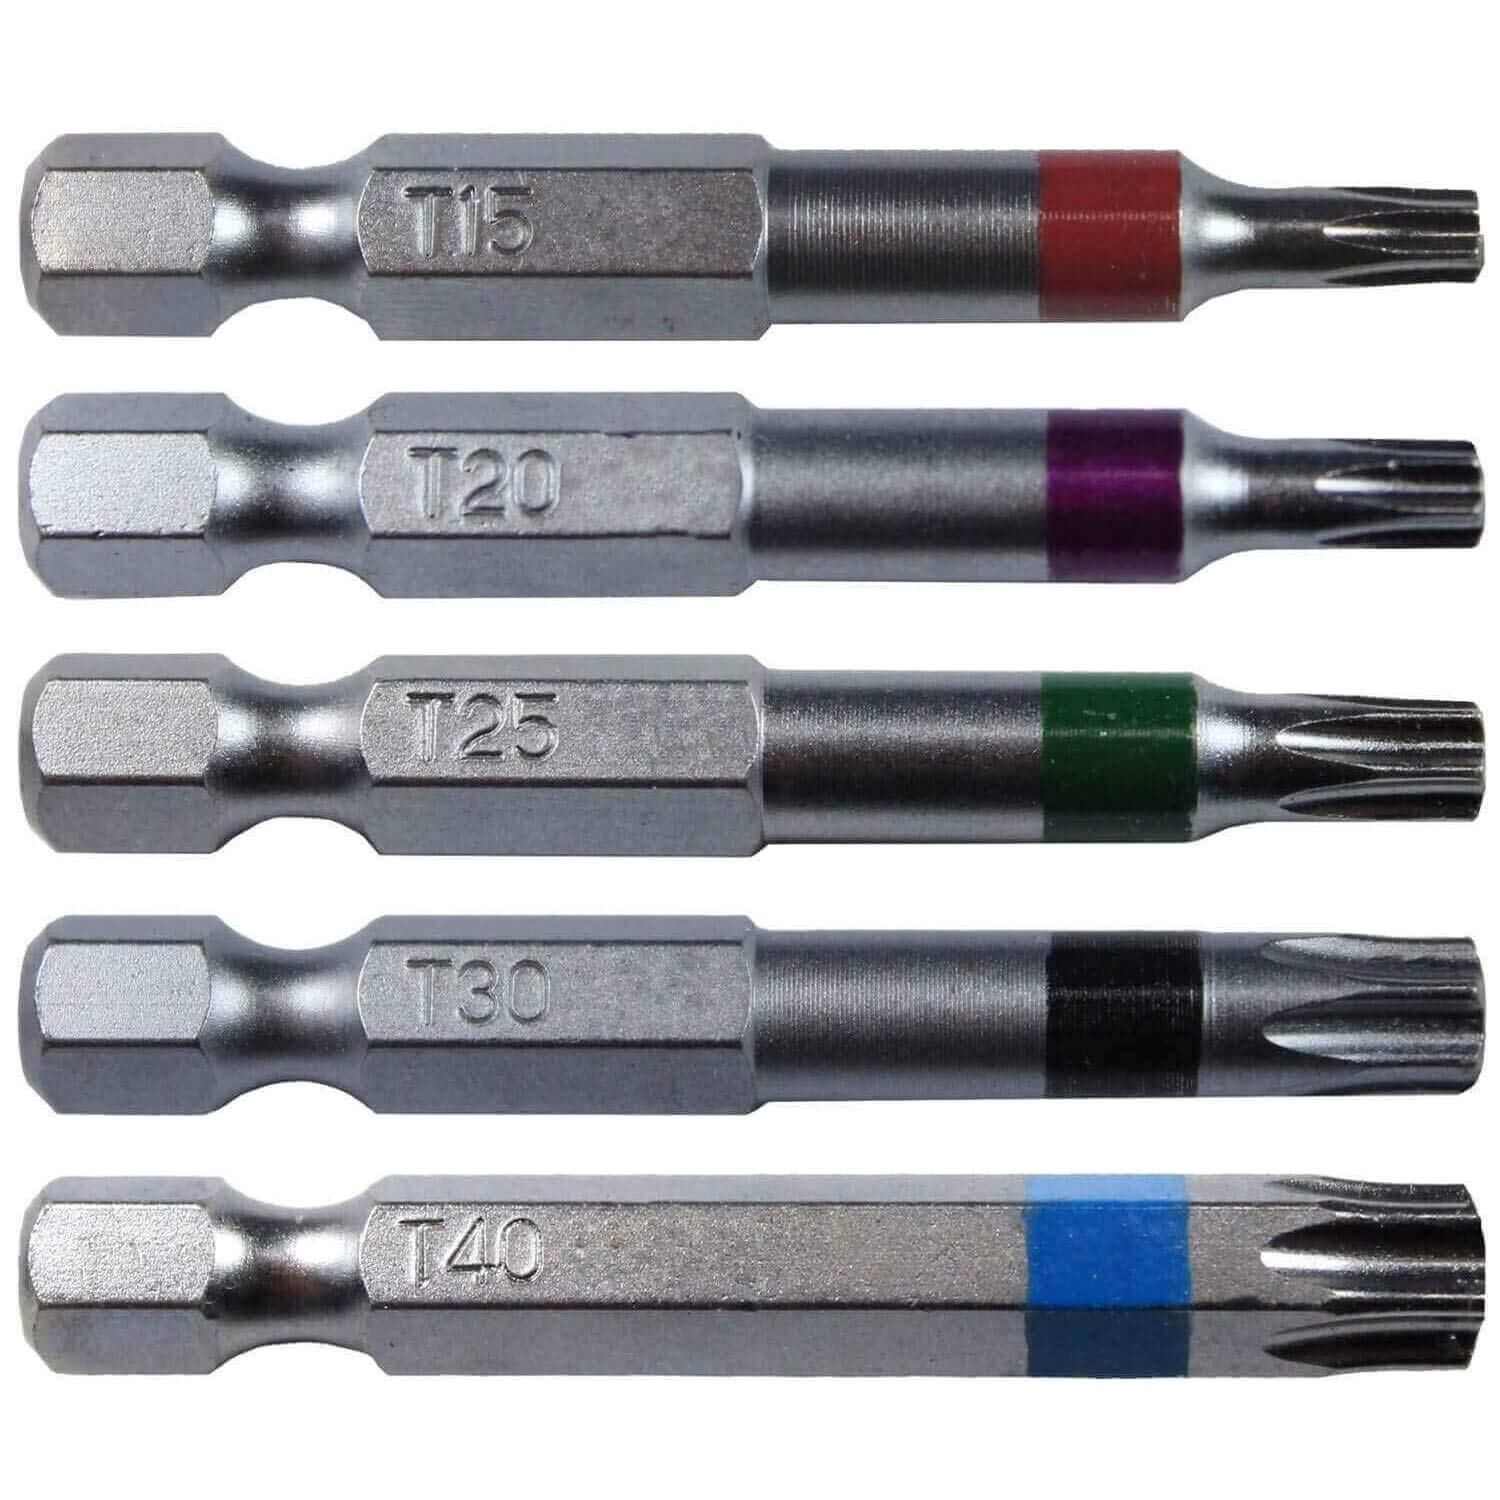 "Torx/Star Drive 5 Piece Bit Set 2"" Quick Change Shank (Color Coded) Includes T-15, T-20, T-25, T-30, T-40 Torx/Star Screw Driver Bits"